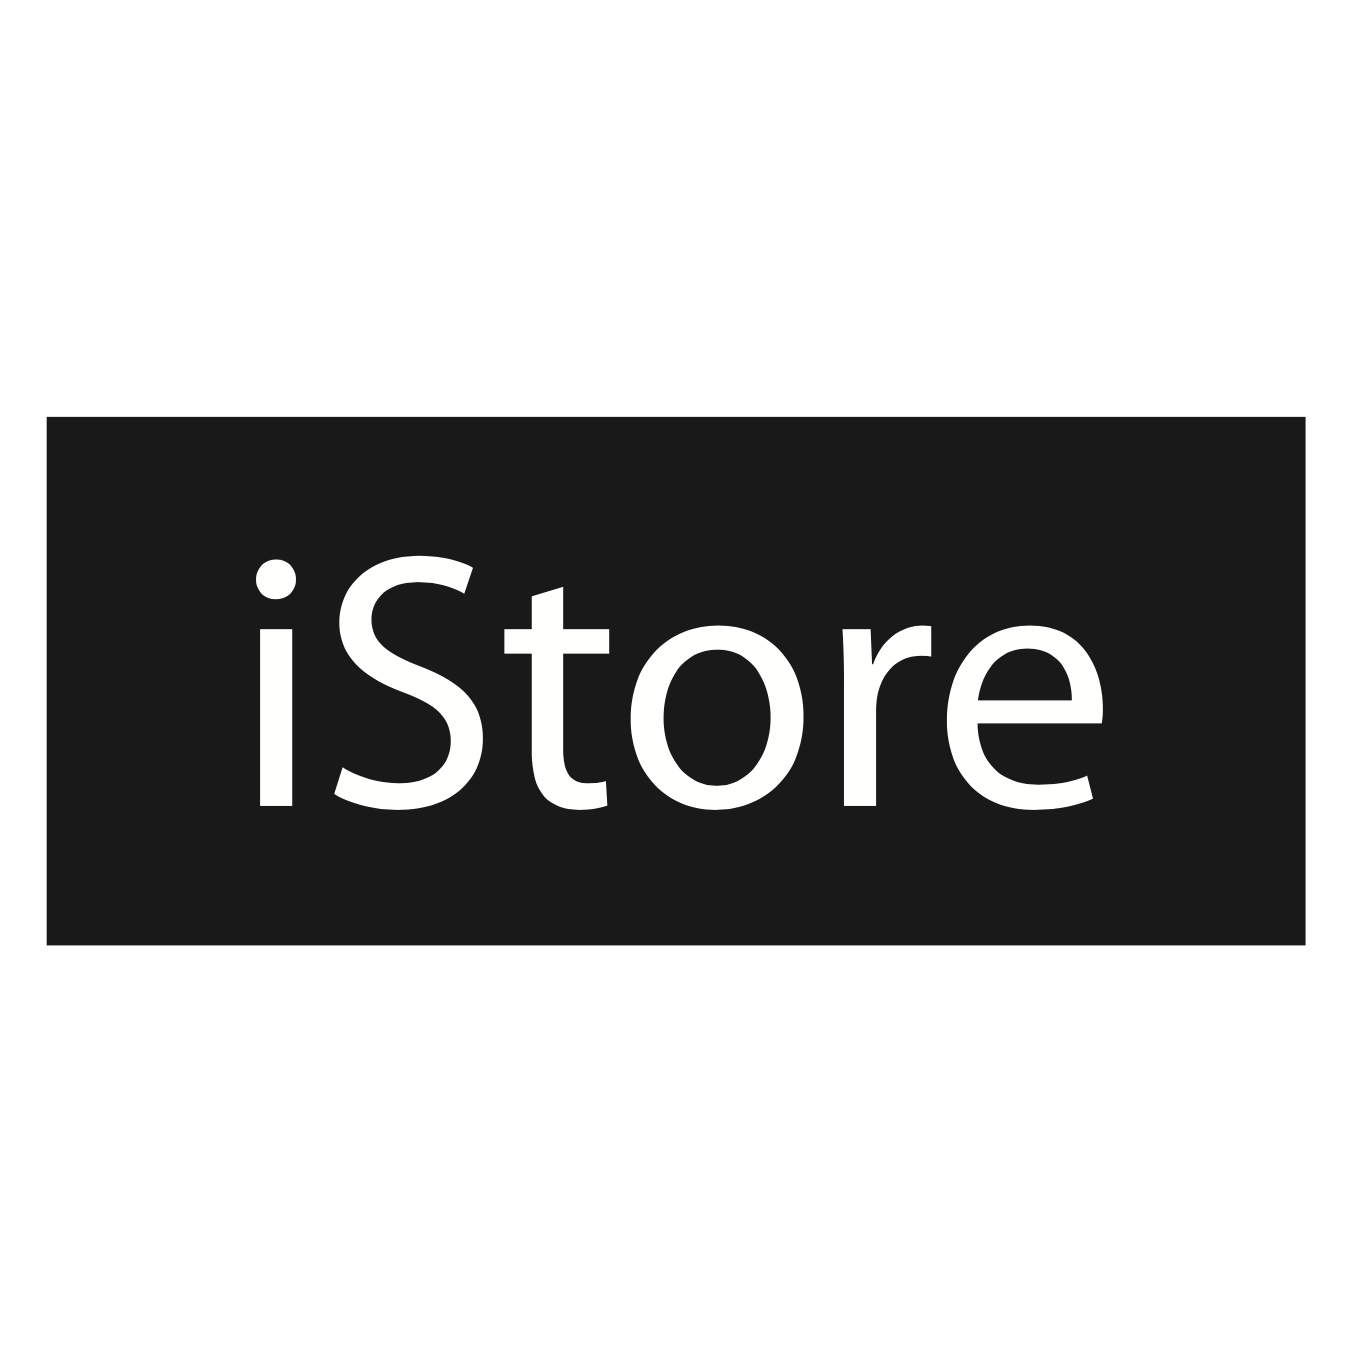 Go from good to great when you trade-in at iStore